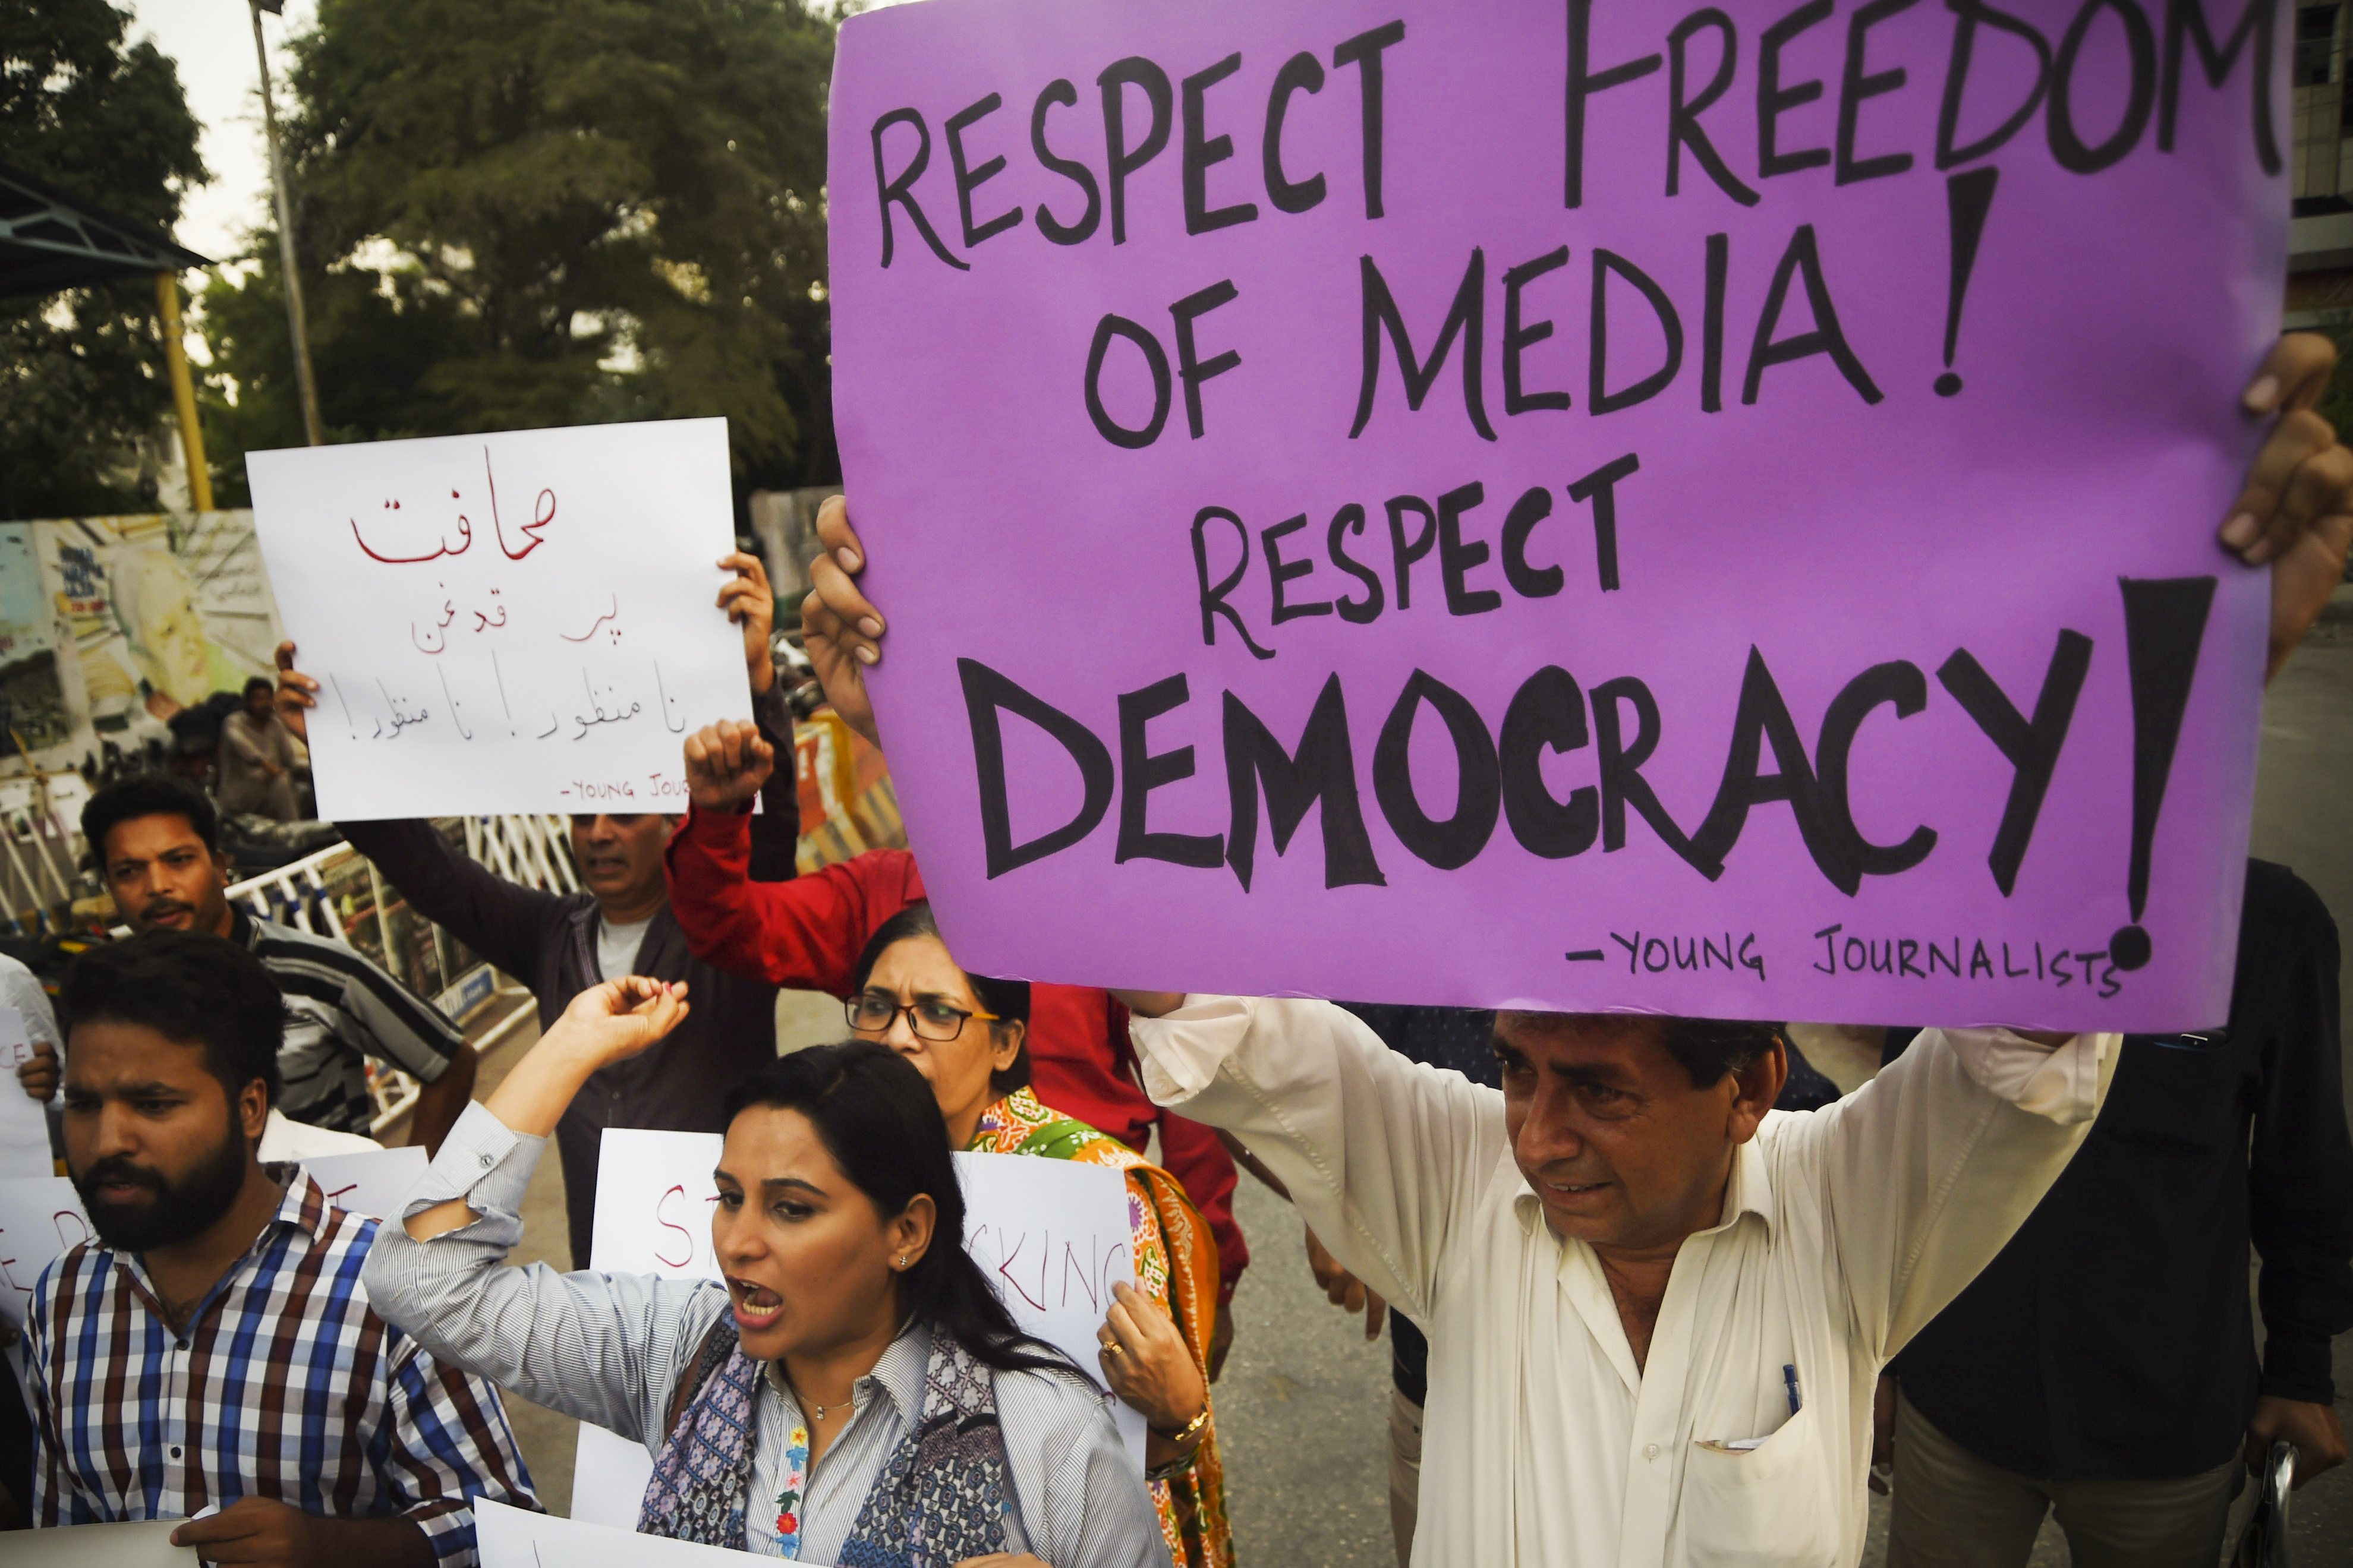 Pakistani journalists and activists demonstrate against an attack on Ahmed Noorani in Karachi, Pakistan on October 28, 2017. Noorani, a senior journalist from a local newspaper, was beaten by unknown attackers on motorbikes on October 26.